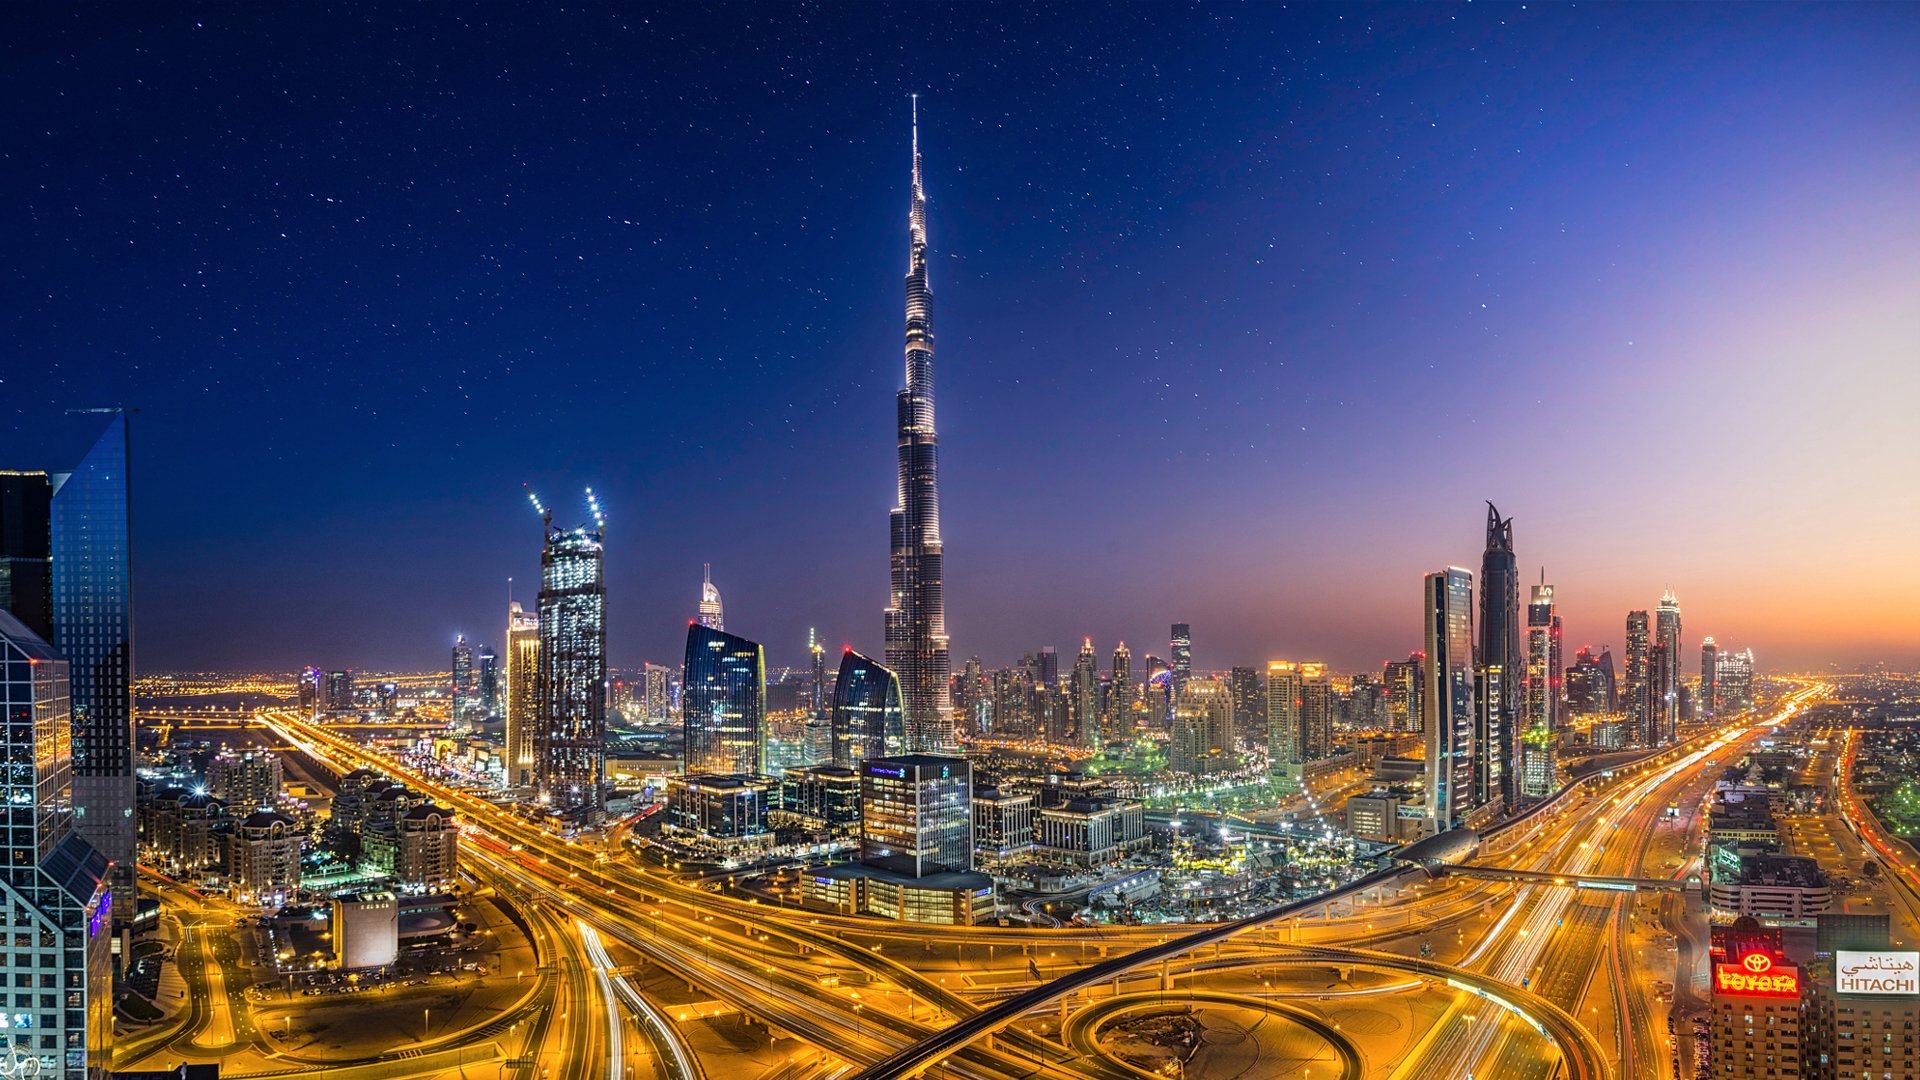 dubai night glow megapolis city united arab emirates